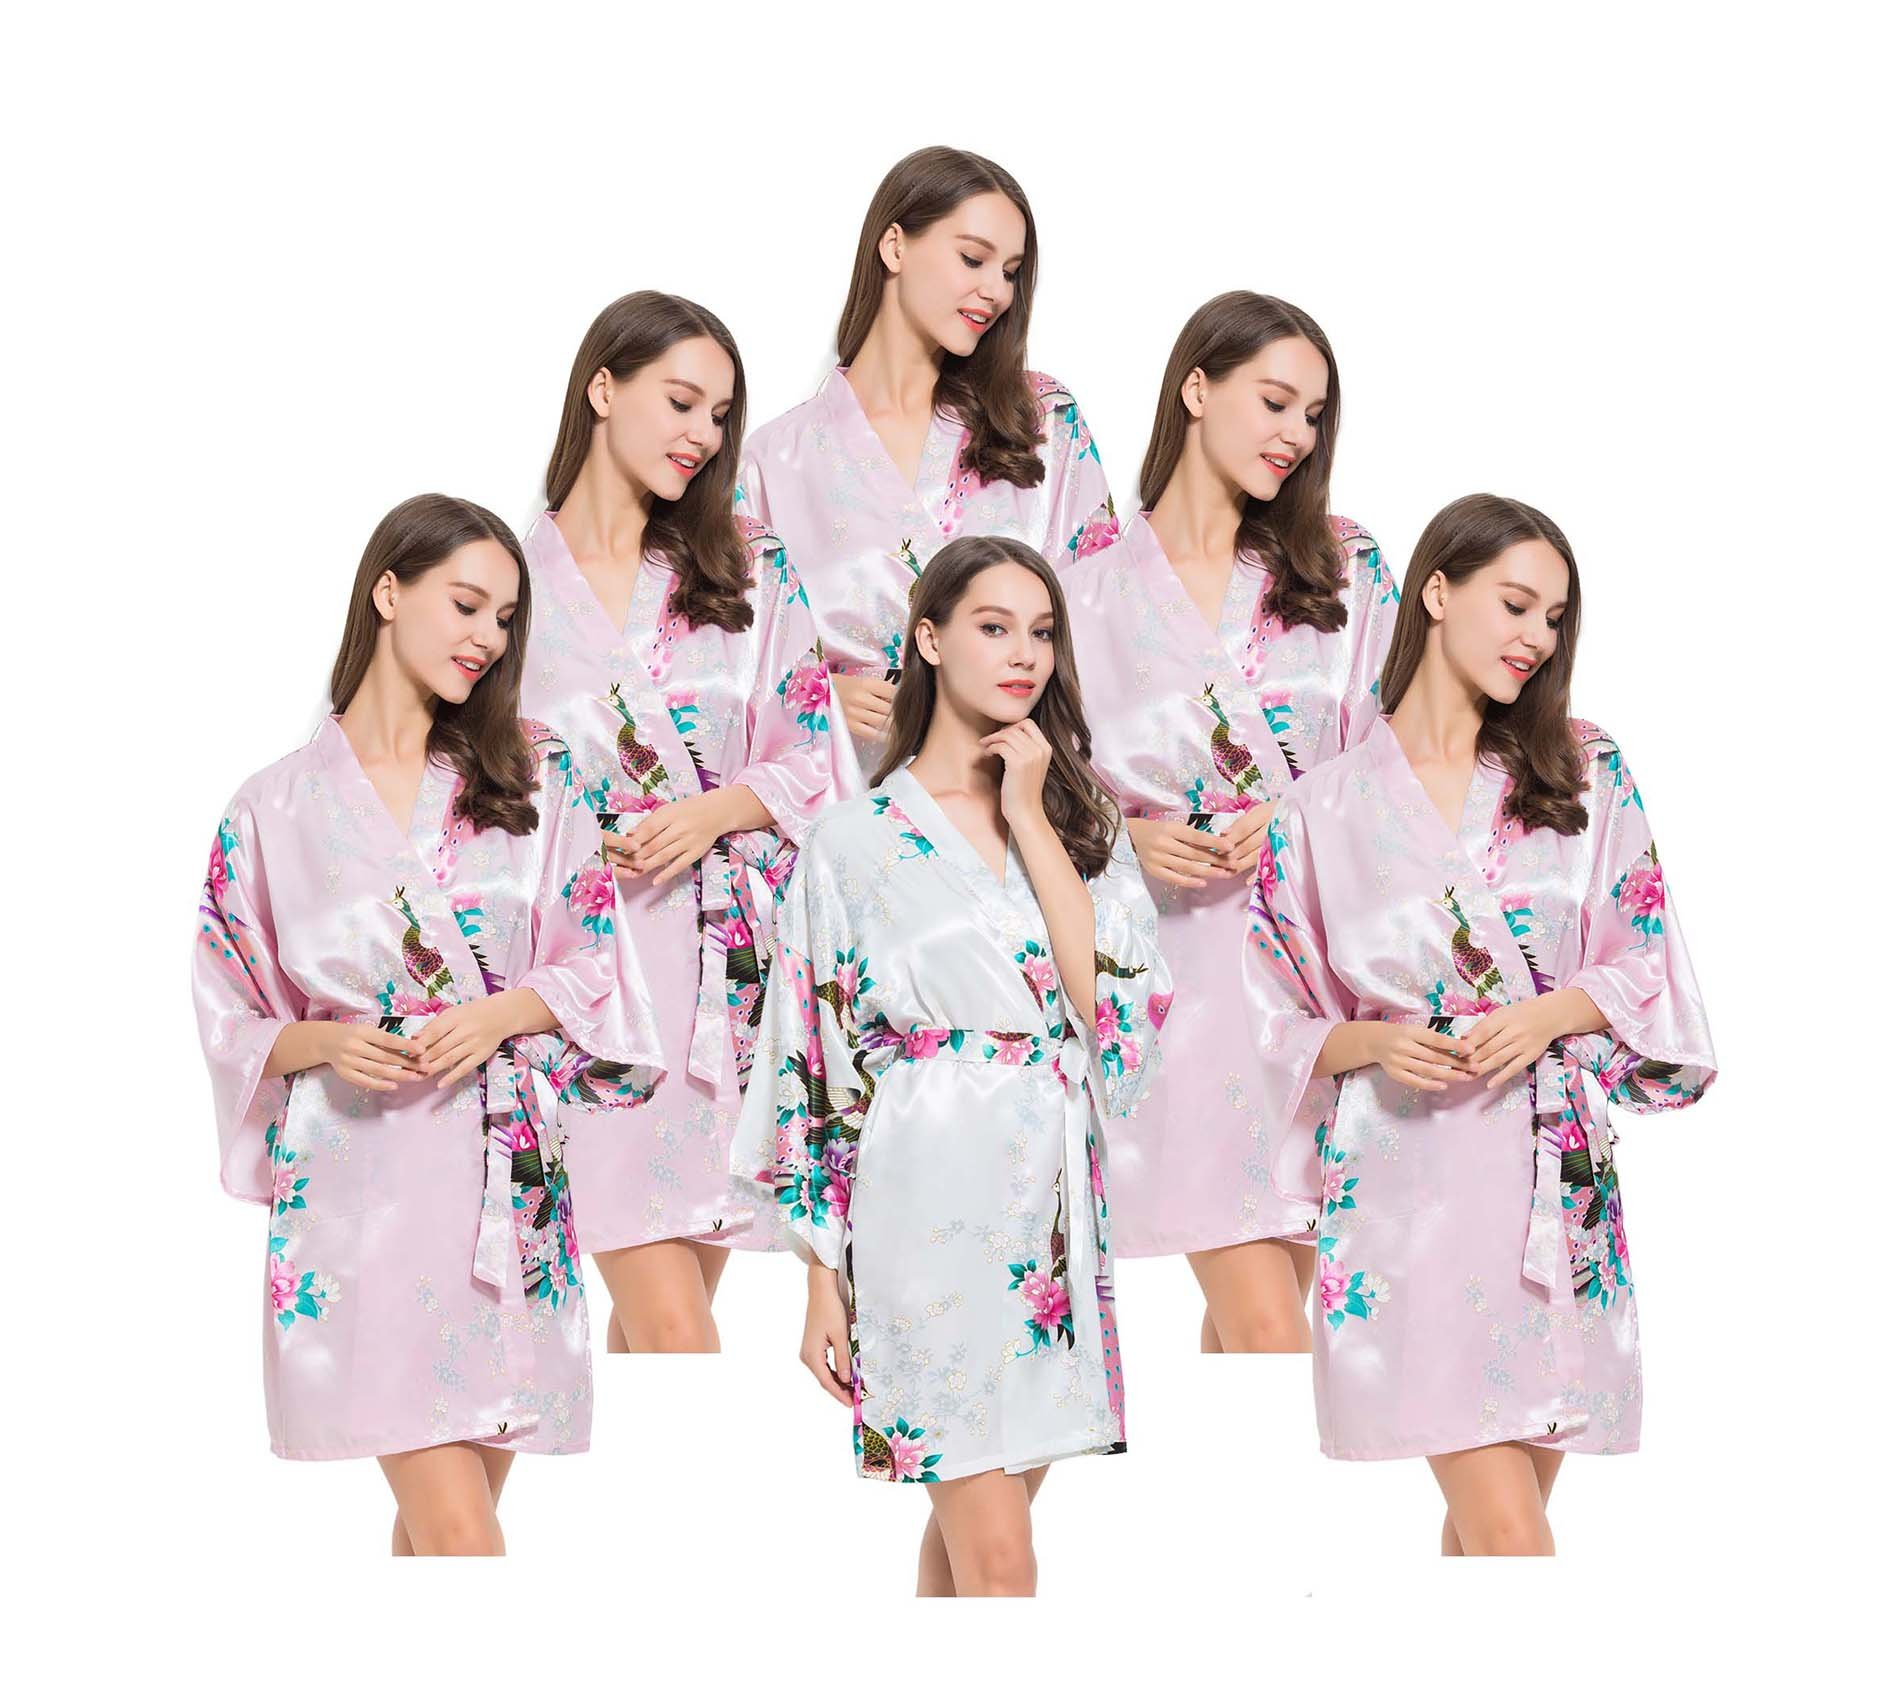 6 Floral Peacock Satin Bridesmaids Robes, OSFM fits Sizes 0-14, 5 Pink, 1 White, by Modern Celebrations